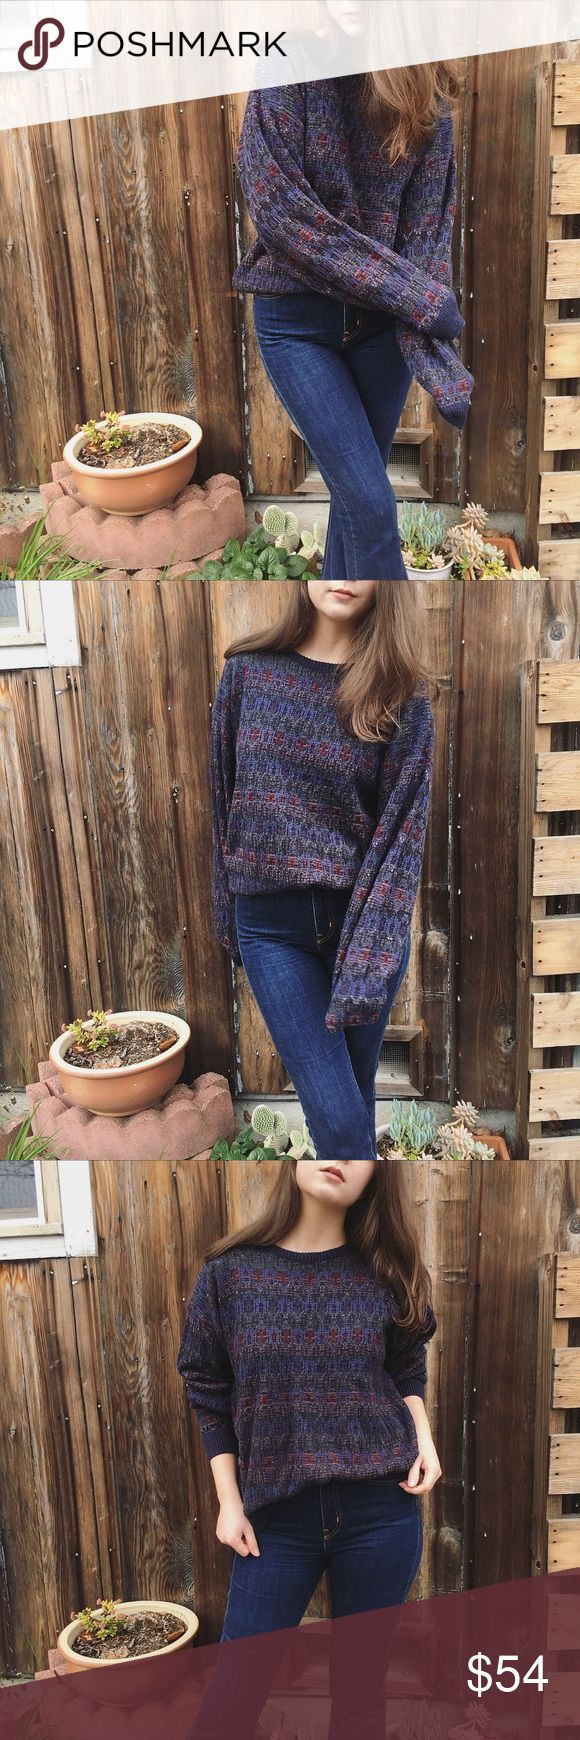 """Vintage Chunky Knit oversized boyfriend sweater Vintage Chunky Knit oversized boyfriend sweater.   Men's/Women's   Gorgeous jewel tones!  Slouchy and Comfy!  So good I almost kept it 😘  Size on tag is L, but can fit XS, S, M, or L Depending on desired fit. Shown on a size small for reference.  Great preowned condition. Some light wear. See photos.   Measurements: Bust:  44"""" Shoulder width:  23"""" Sleeve length:  23"""" Total length:  25""""  Please feel free to ask questions in the comments ⬇️…"""